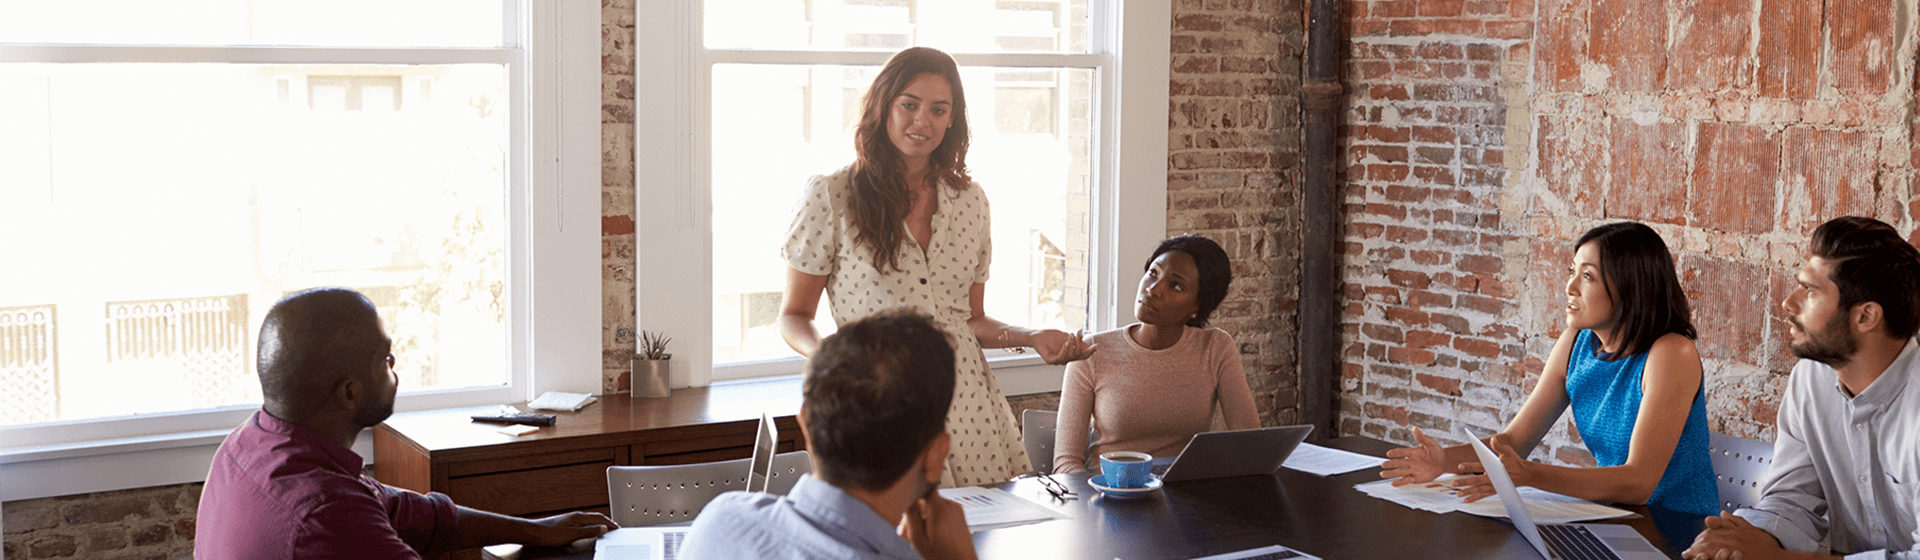 Key Elements Of Keeping Employees Engaged Through Your eLearning Courses